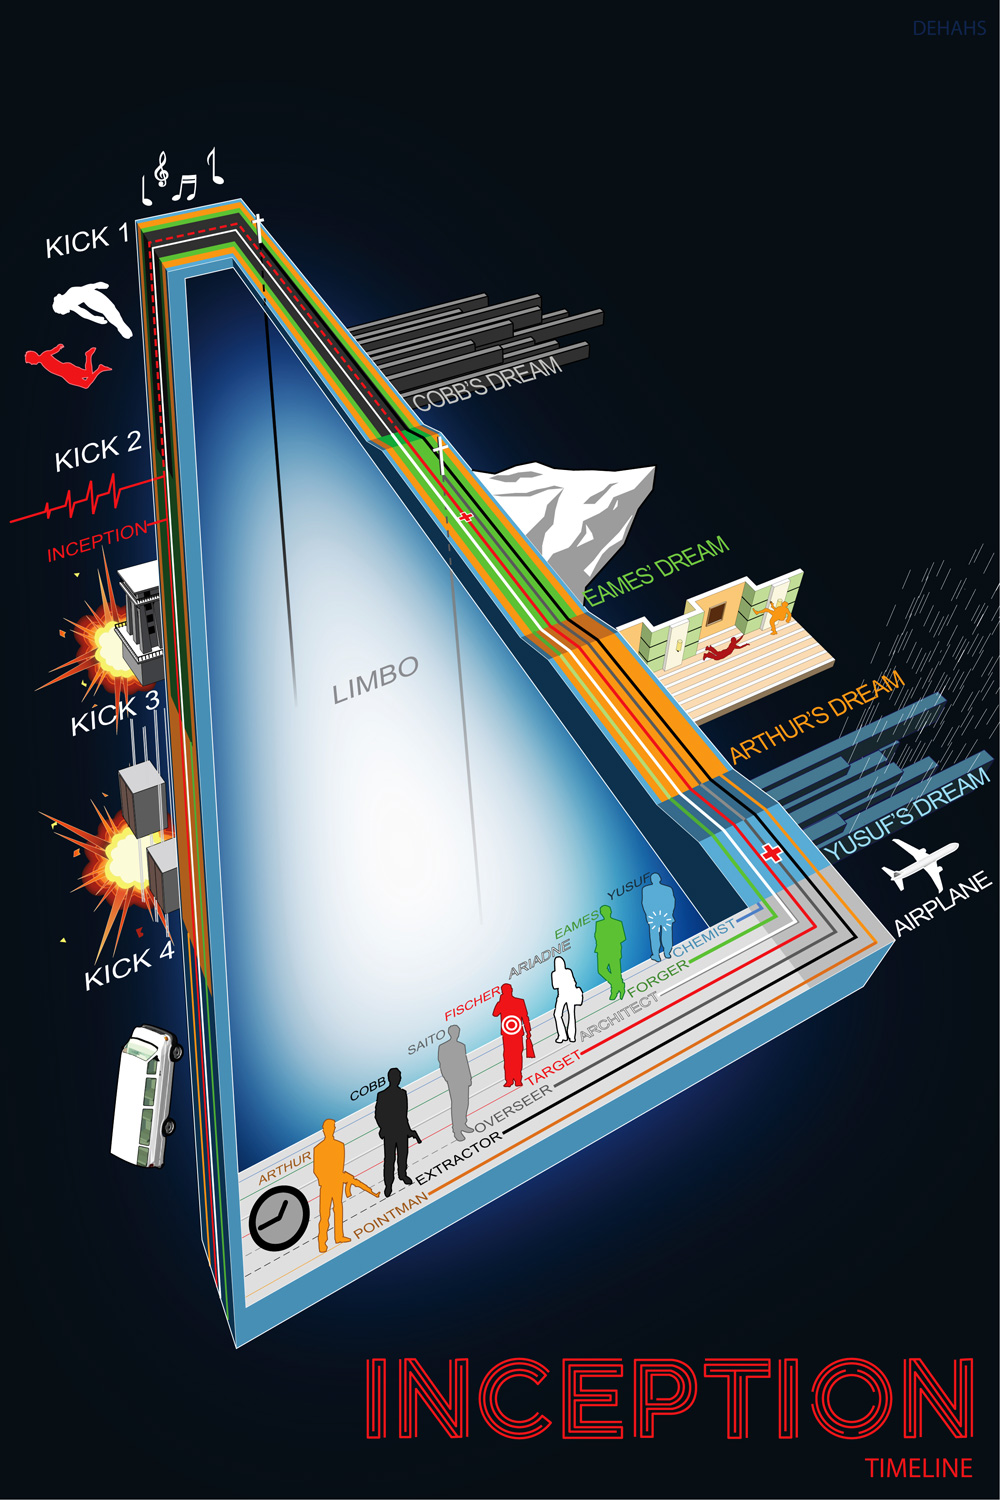 Inception_Infographic_by_dehahs